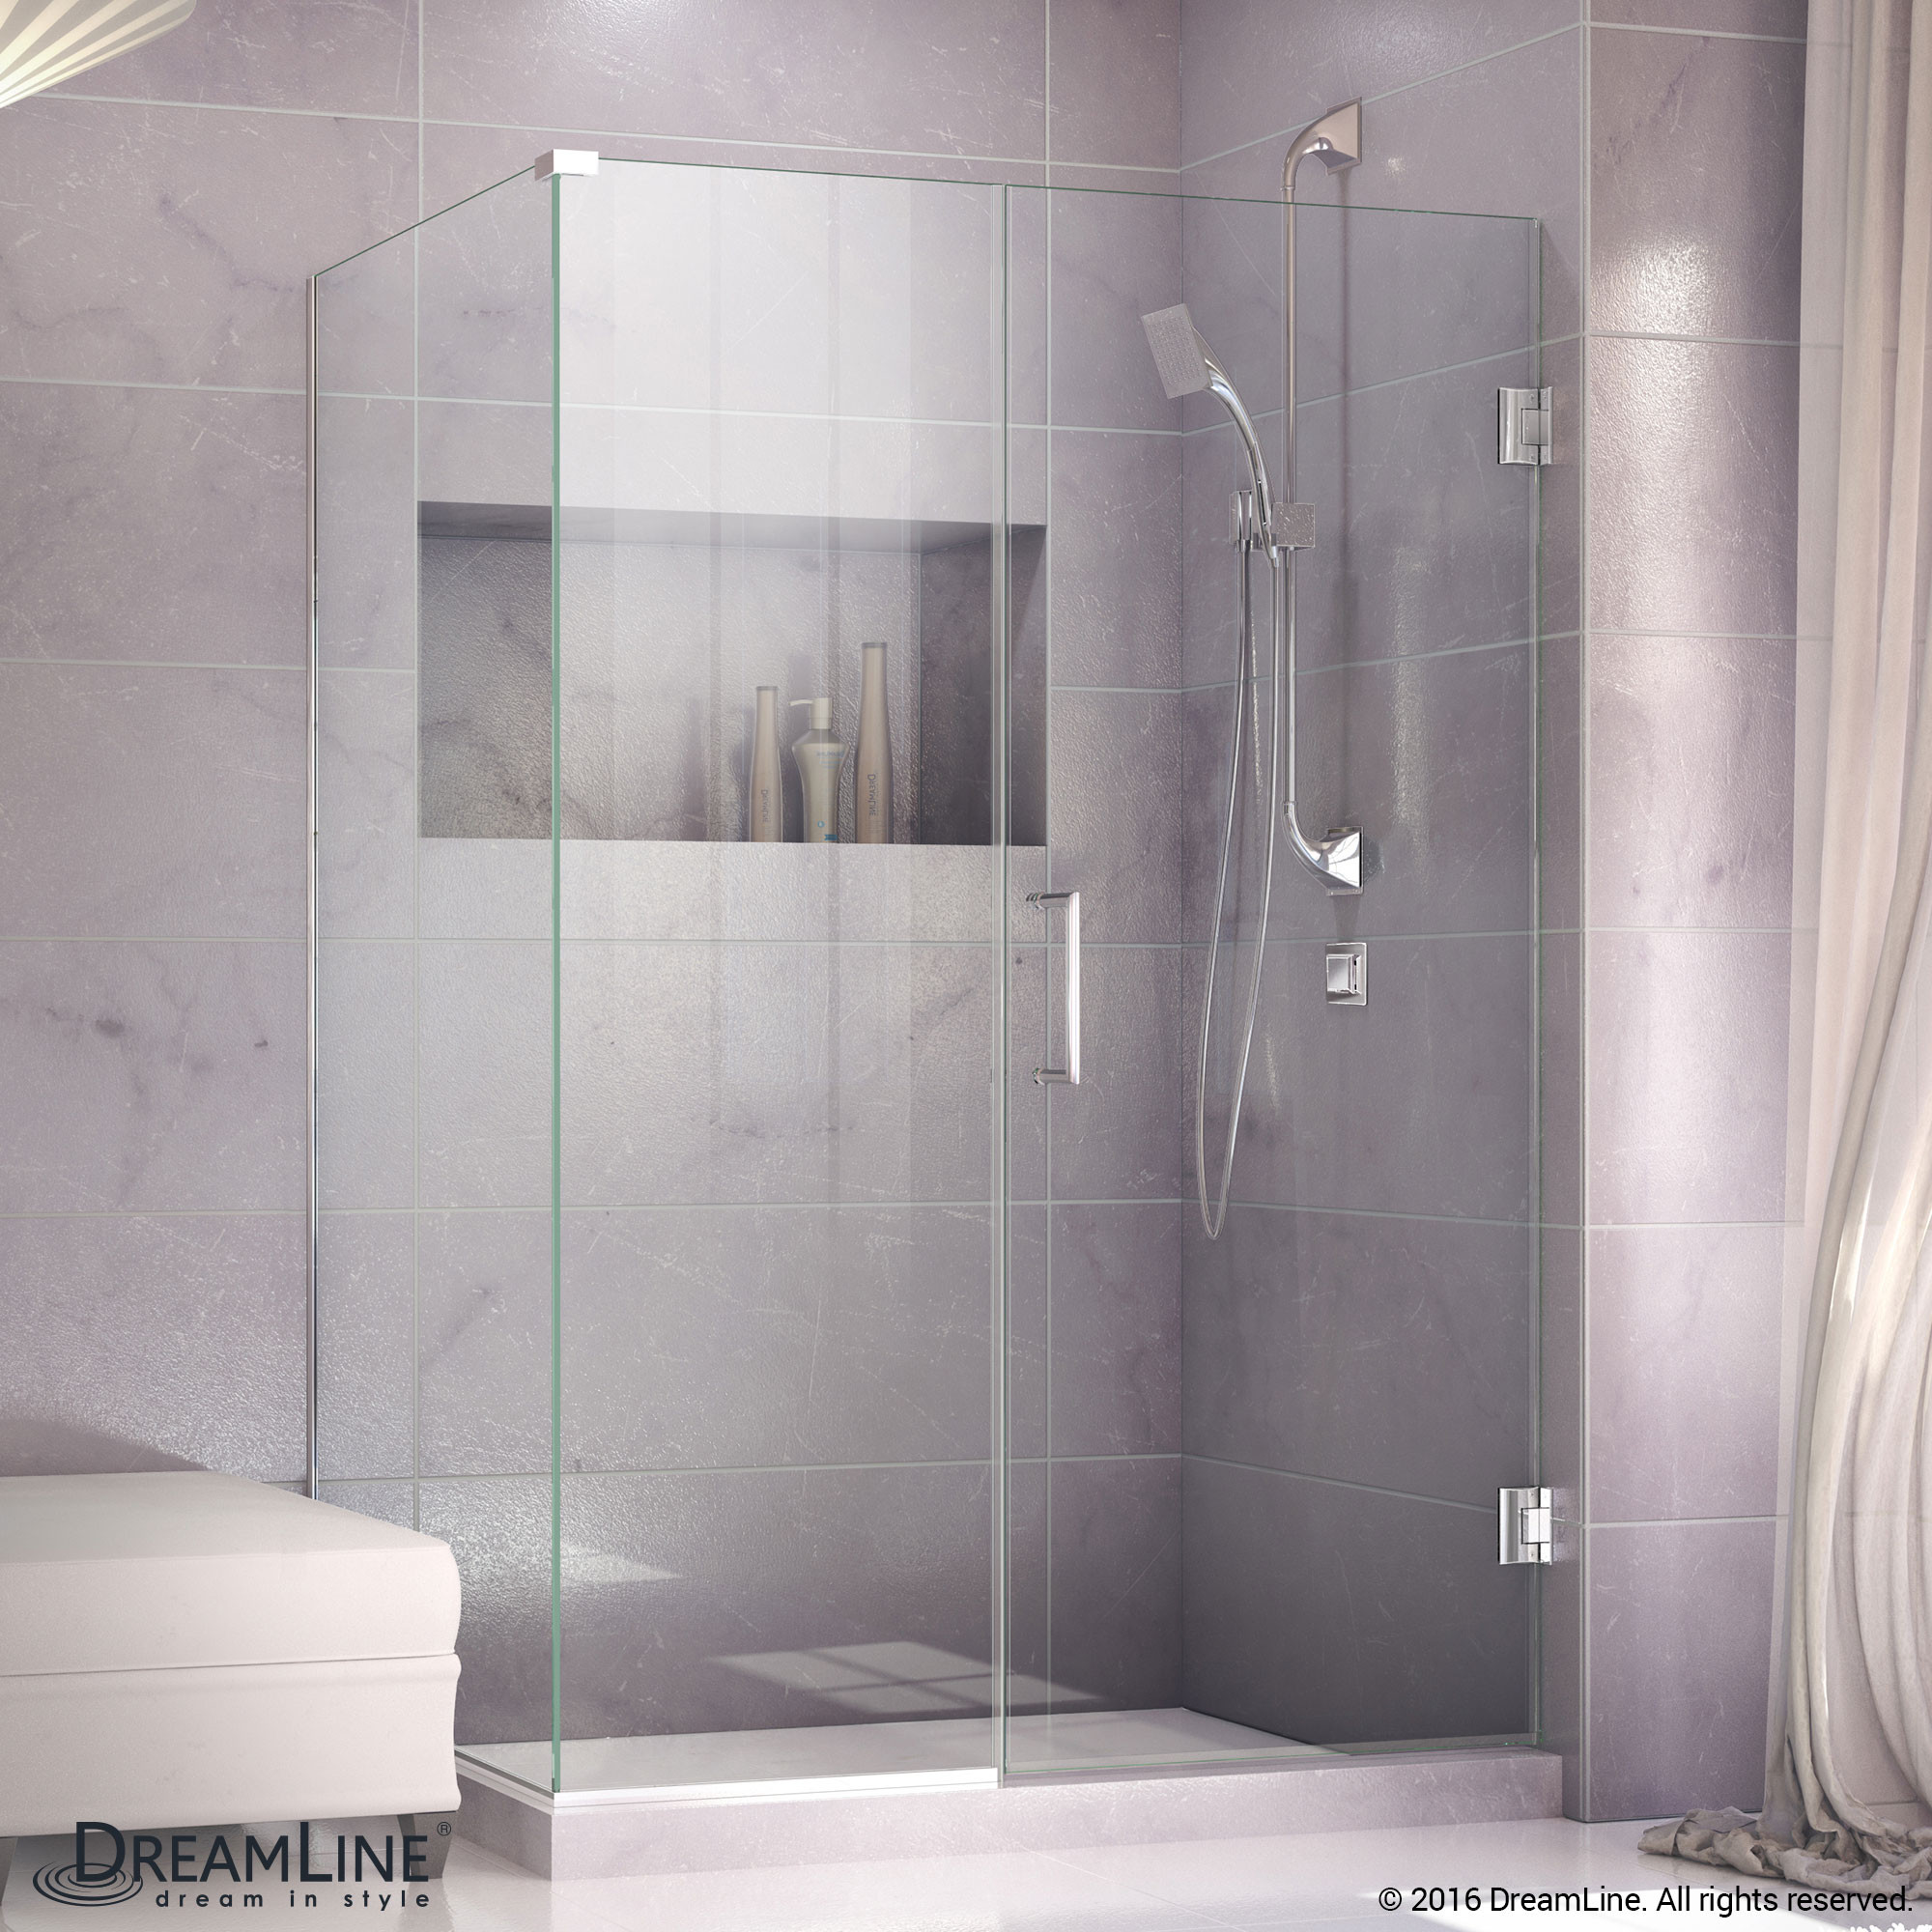 DreamLine SHEN-24440340-01 Unidoor Plus Hinged Shower Enclosure In Chrome Finish Hardware